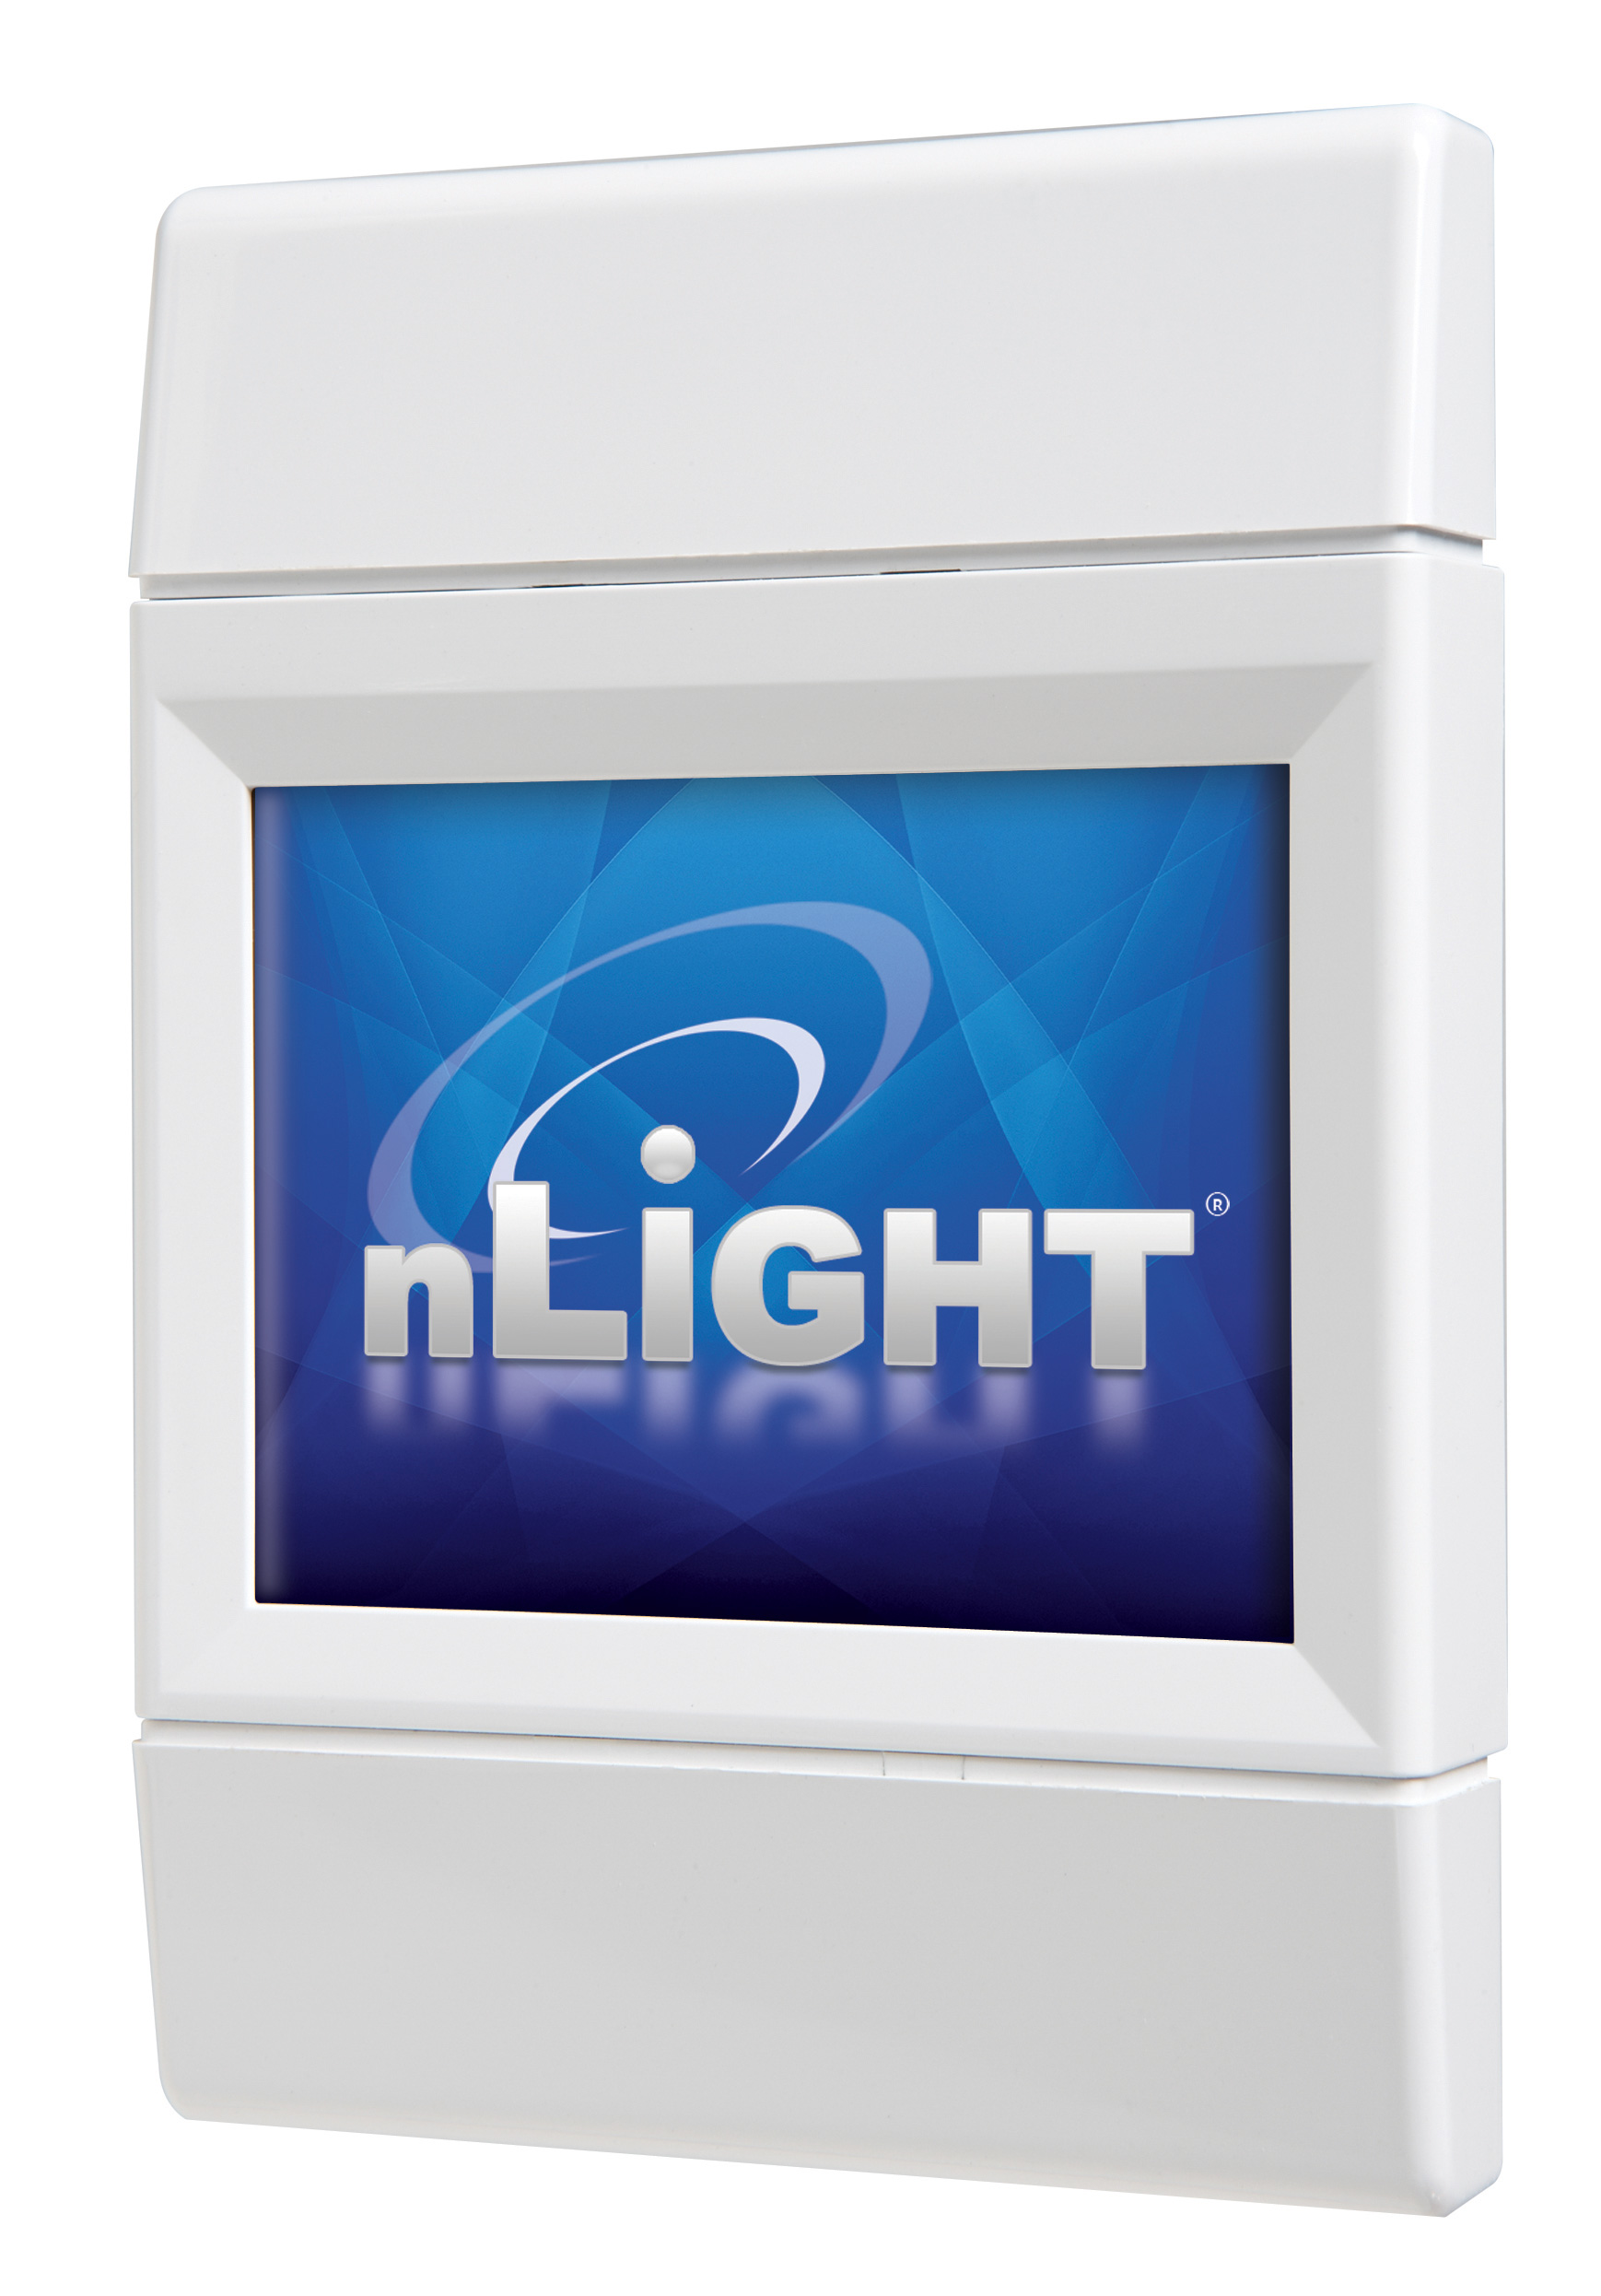 nLight | Acuity Brands News